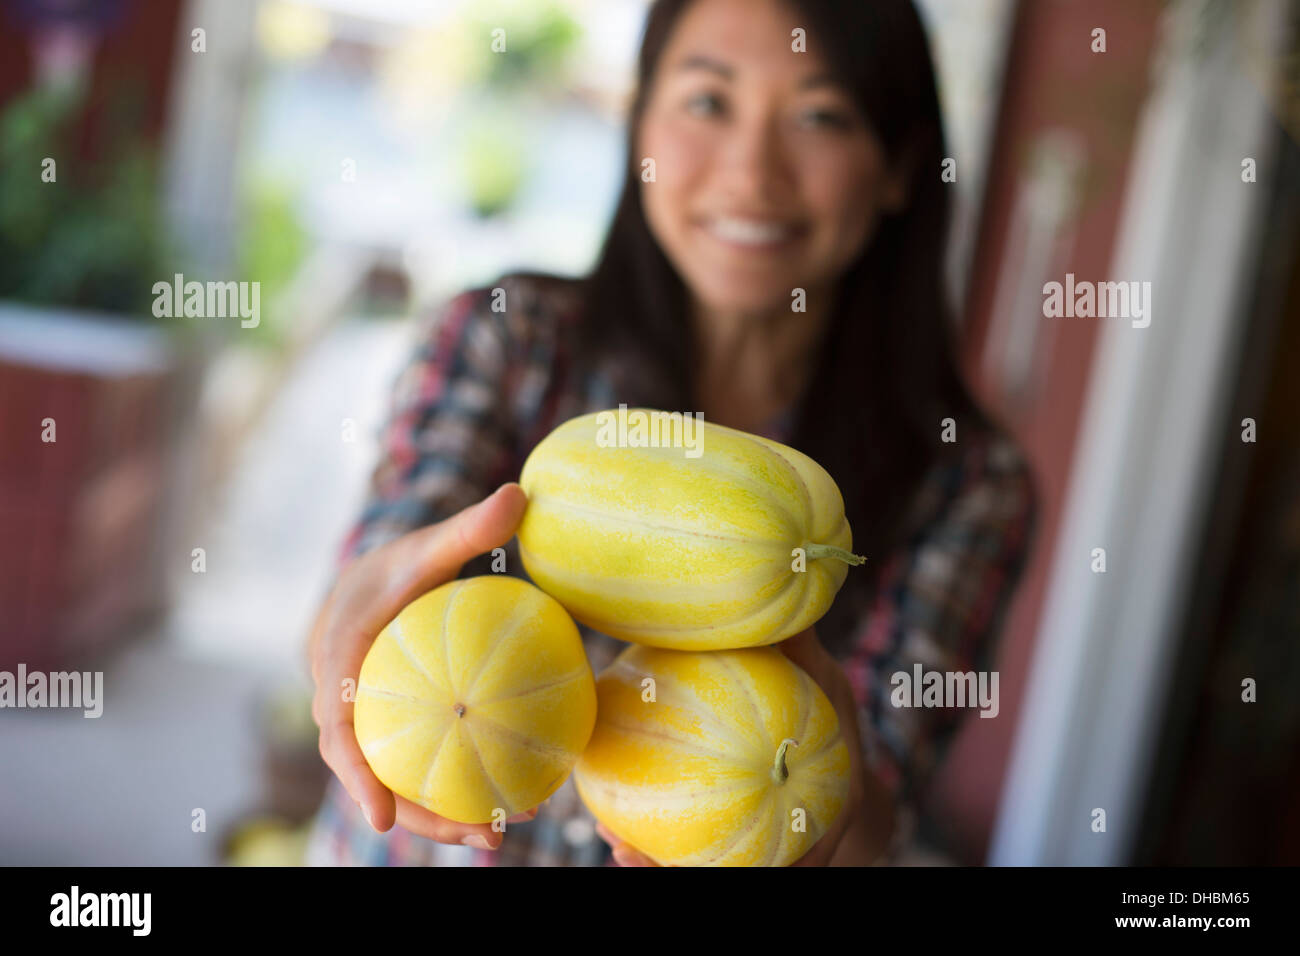 A farm growing and selling organic vegetables and fruit. A woman holding freshly harvested striped squashes. - Stock Image